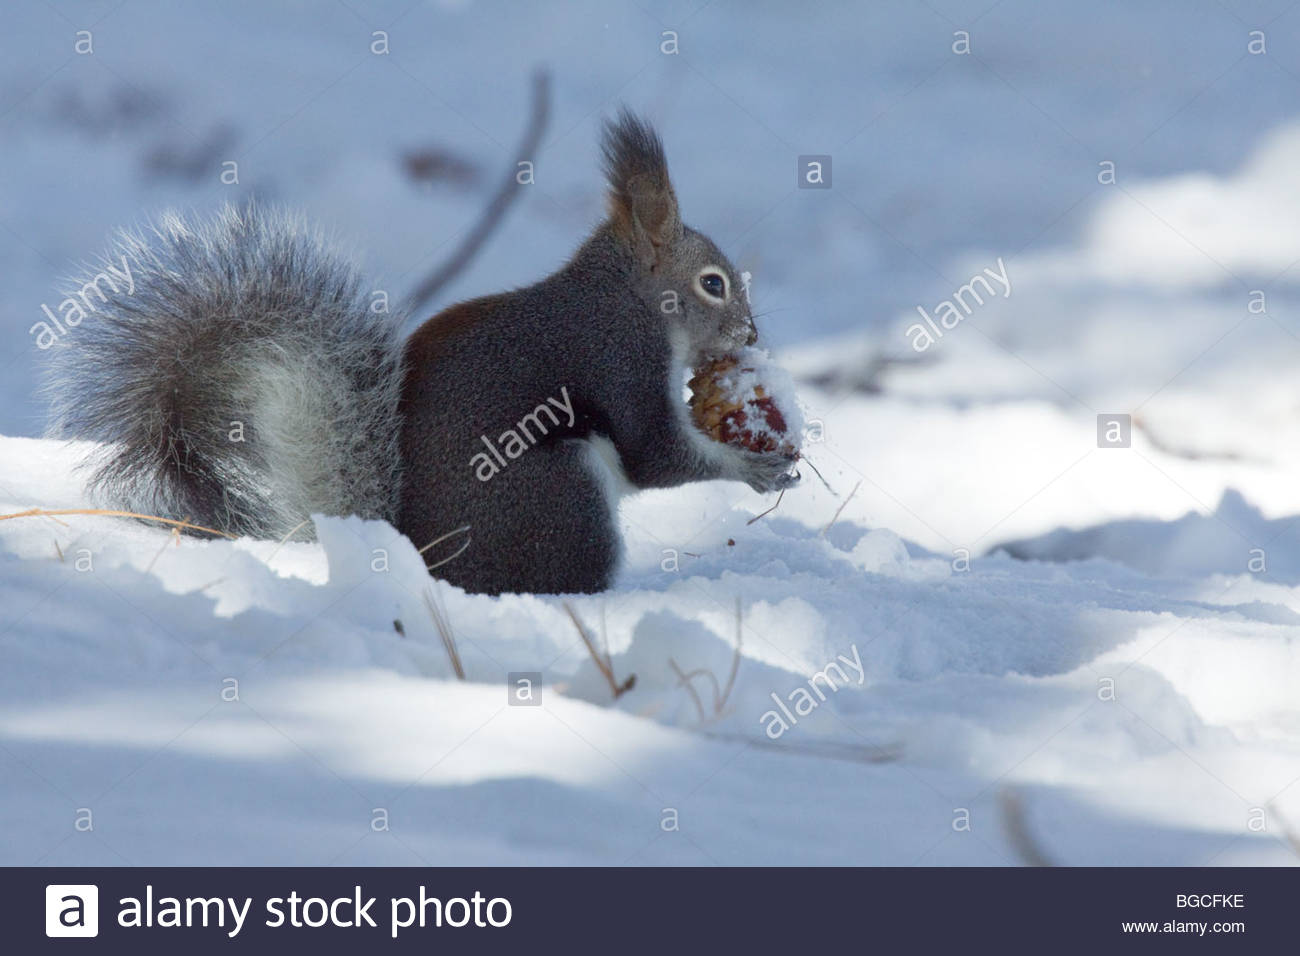 abert-squirrel-sciurus-aberti-aberti-in-snow-eating-cone-BGCFKE.jpg